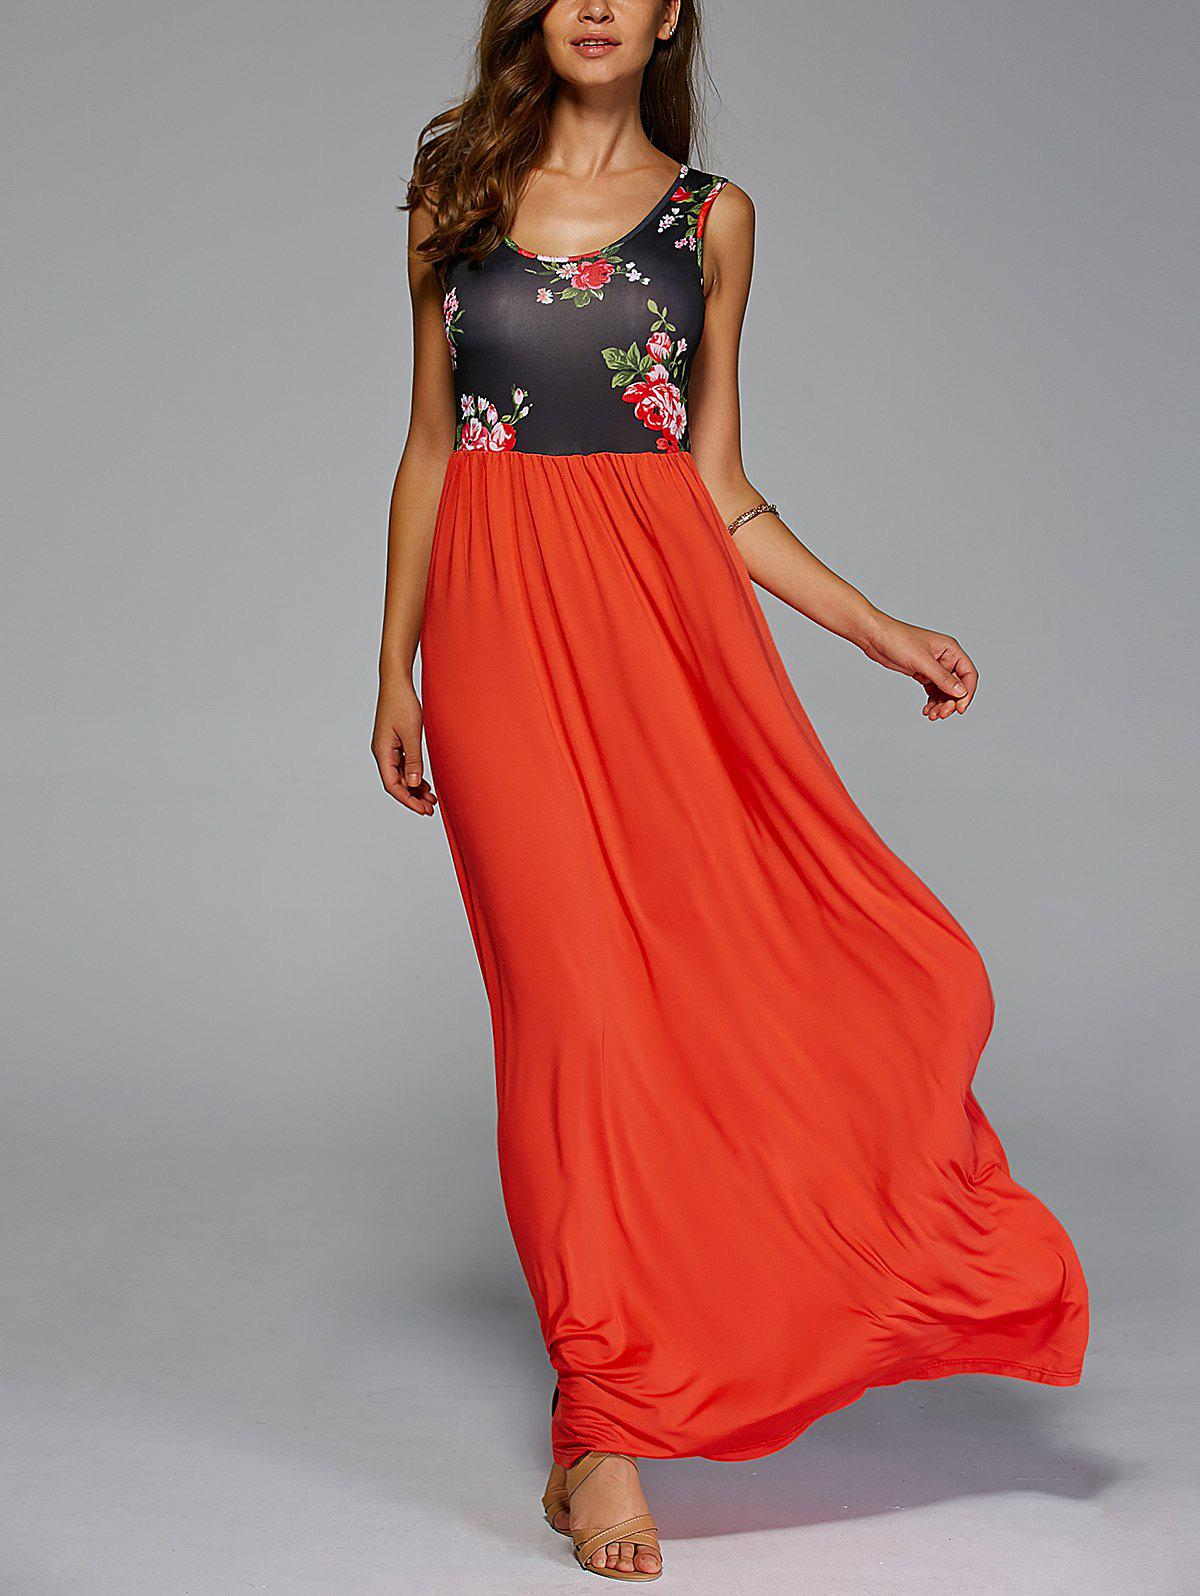 Stylish Scoop Neck Floral Print Maxi Dress